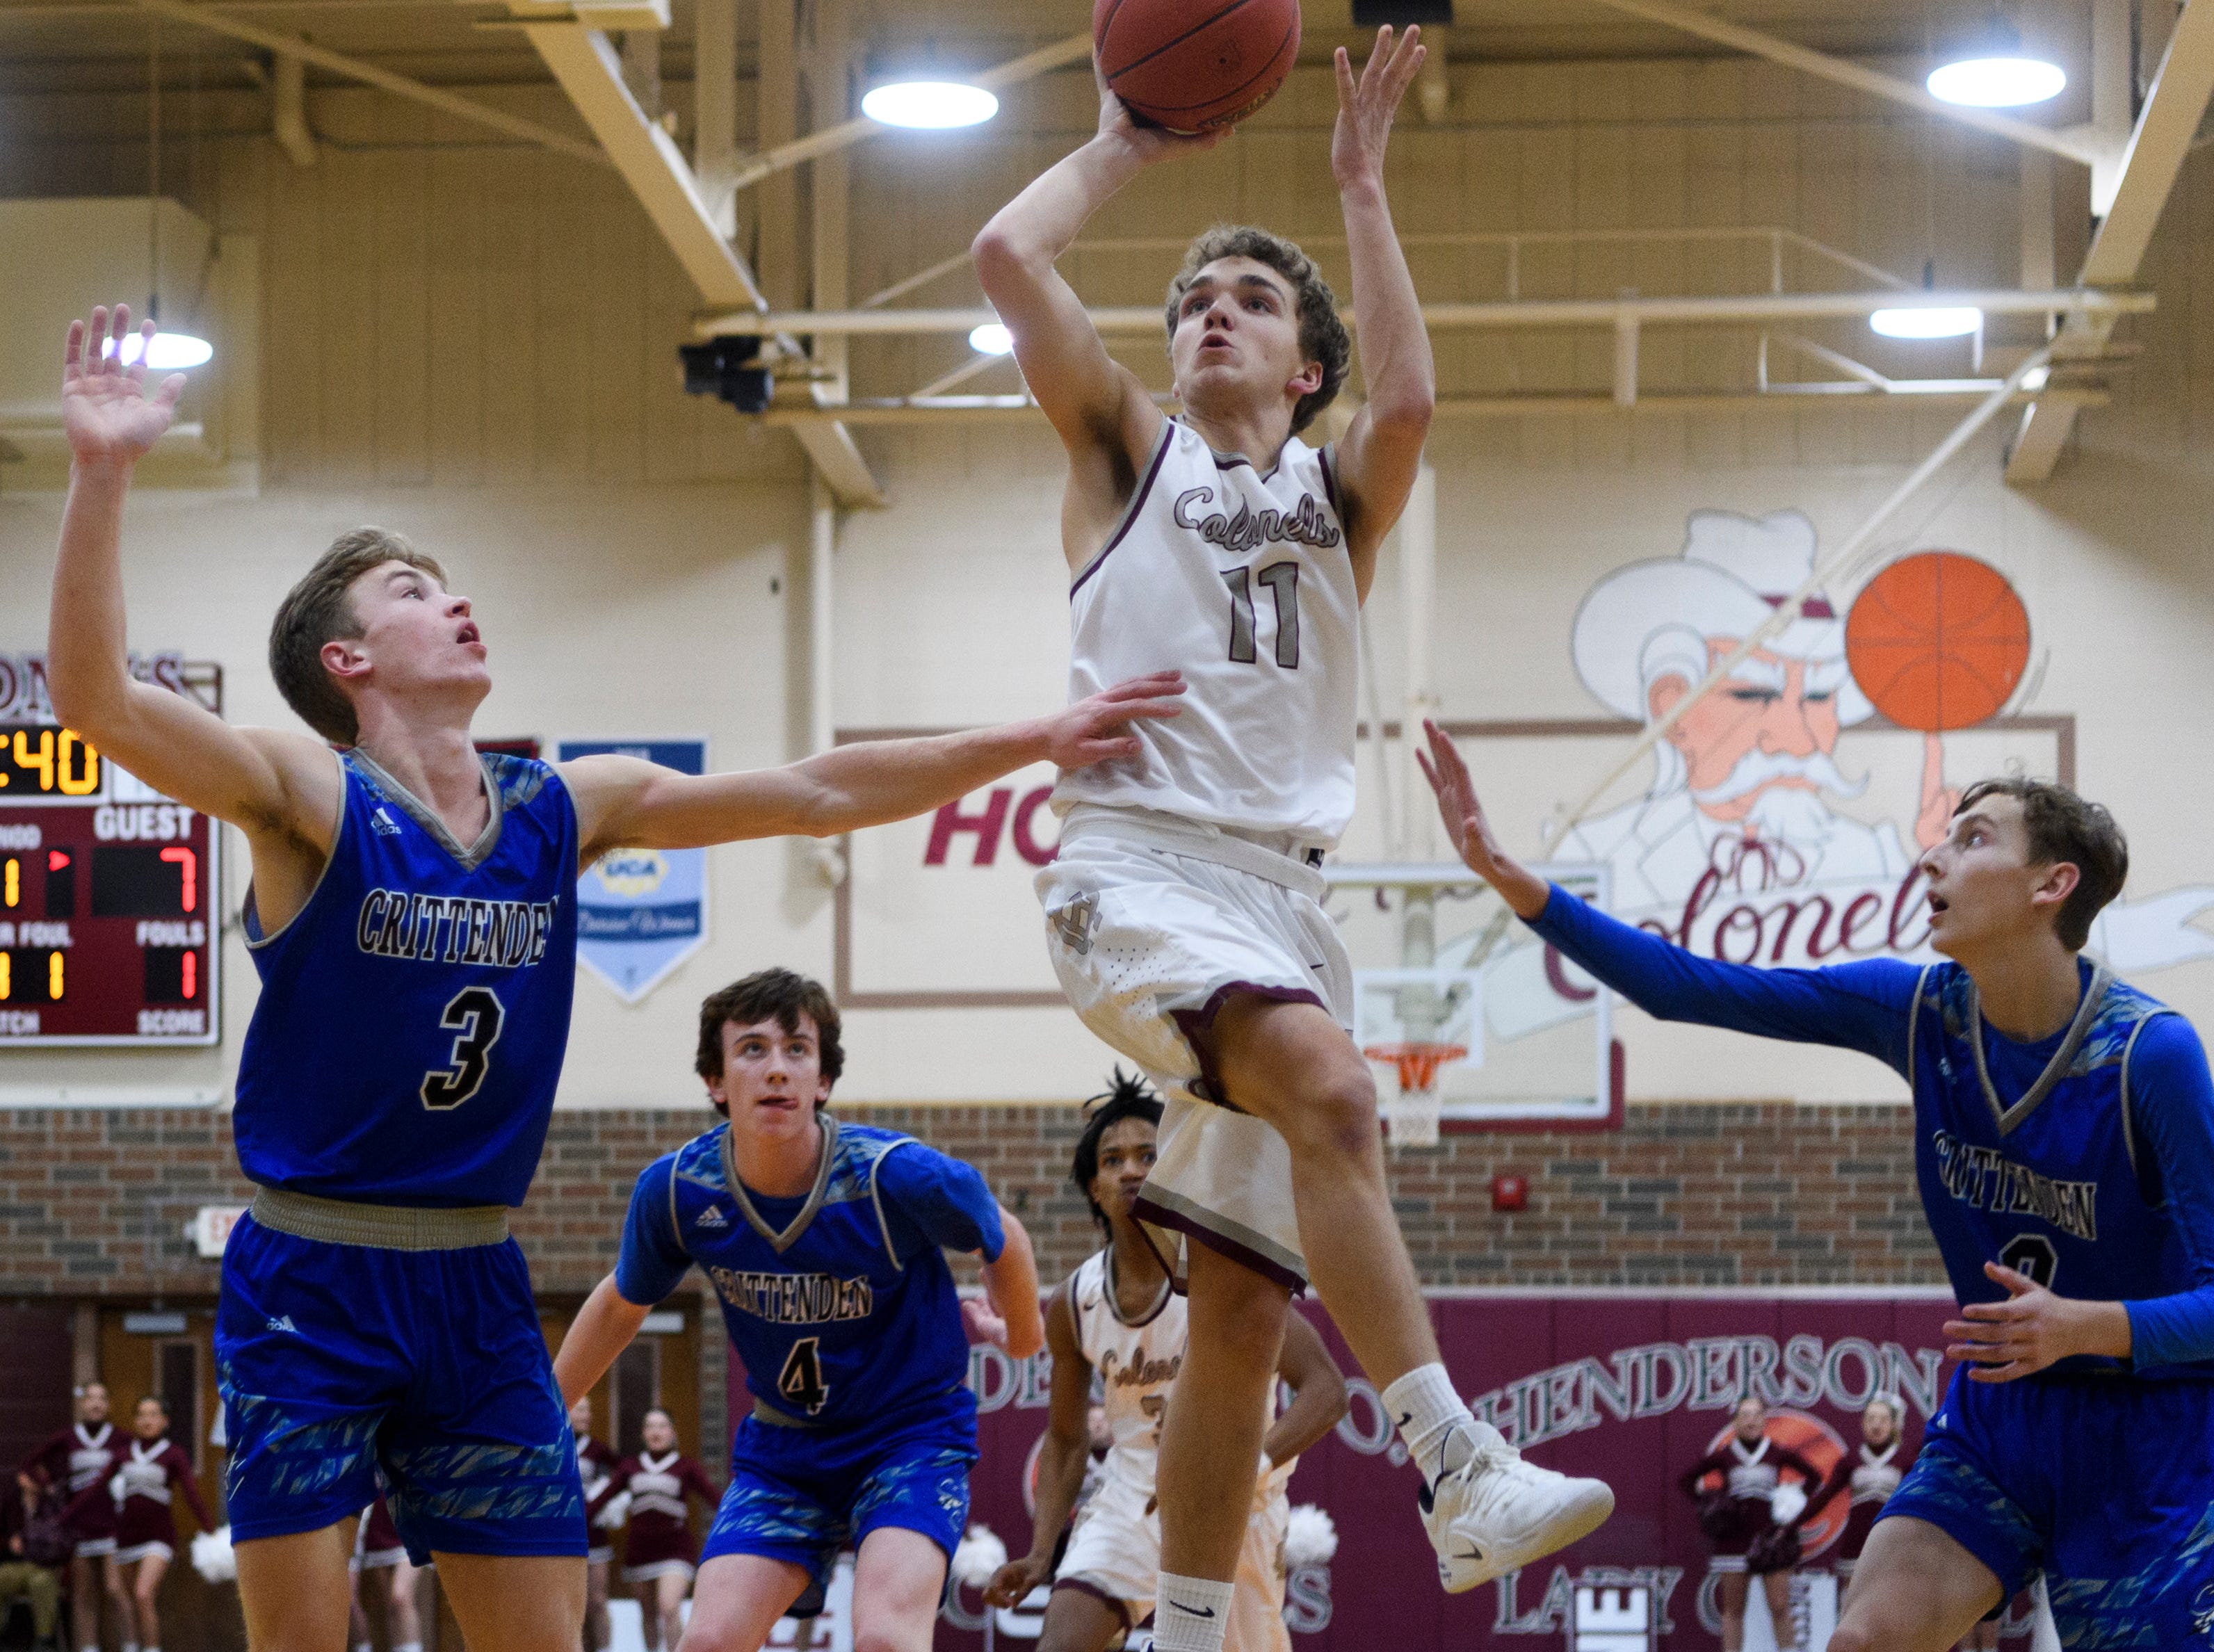 Henderson's Luke Fulkerson (11) takes a shot against the Crittenden County Rockets during the first quarter at Henderson County High School in Henderson, Ky., Tuesday, Dec. 18, 2018. The Colonels defeated the Rockets 88-52.